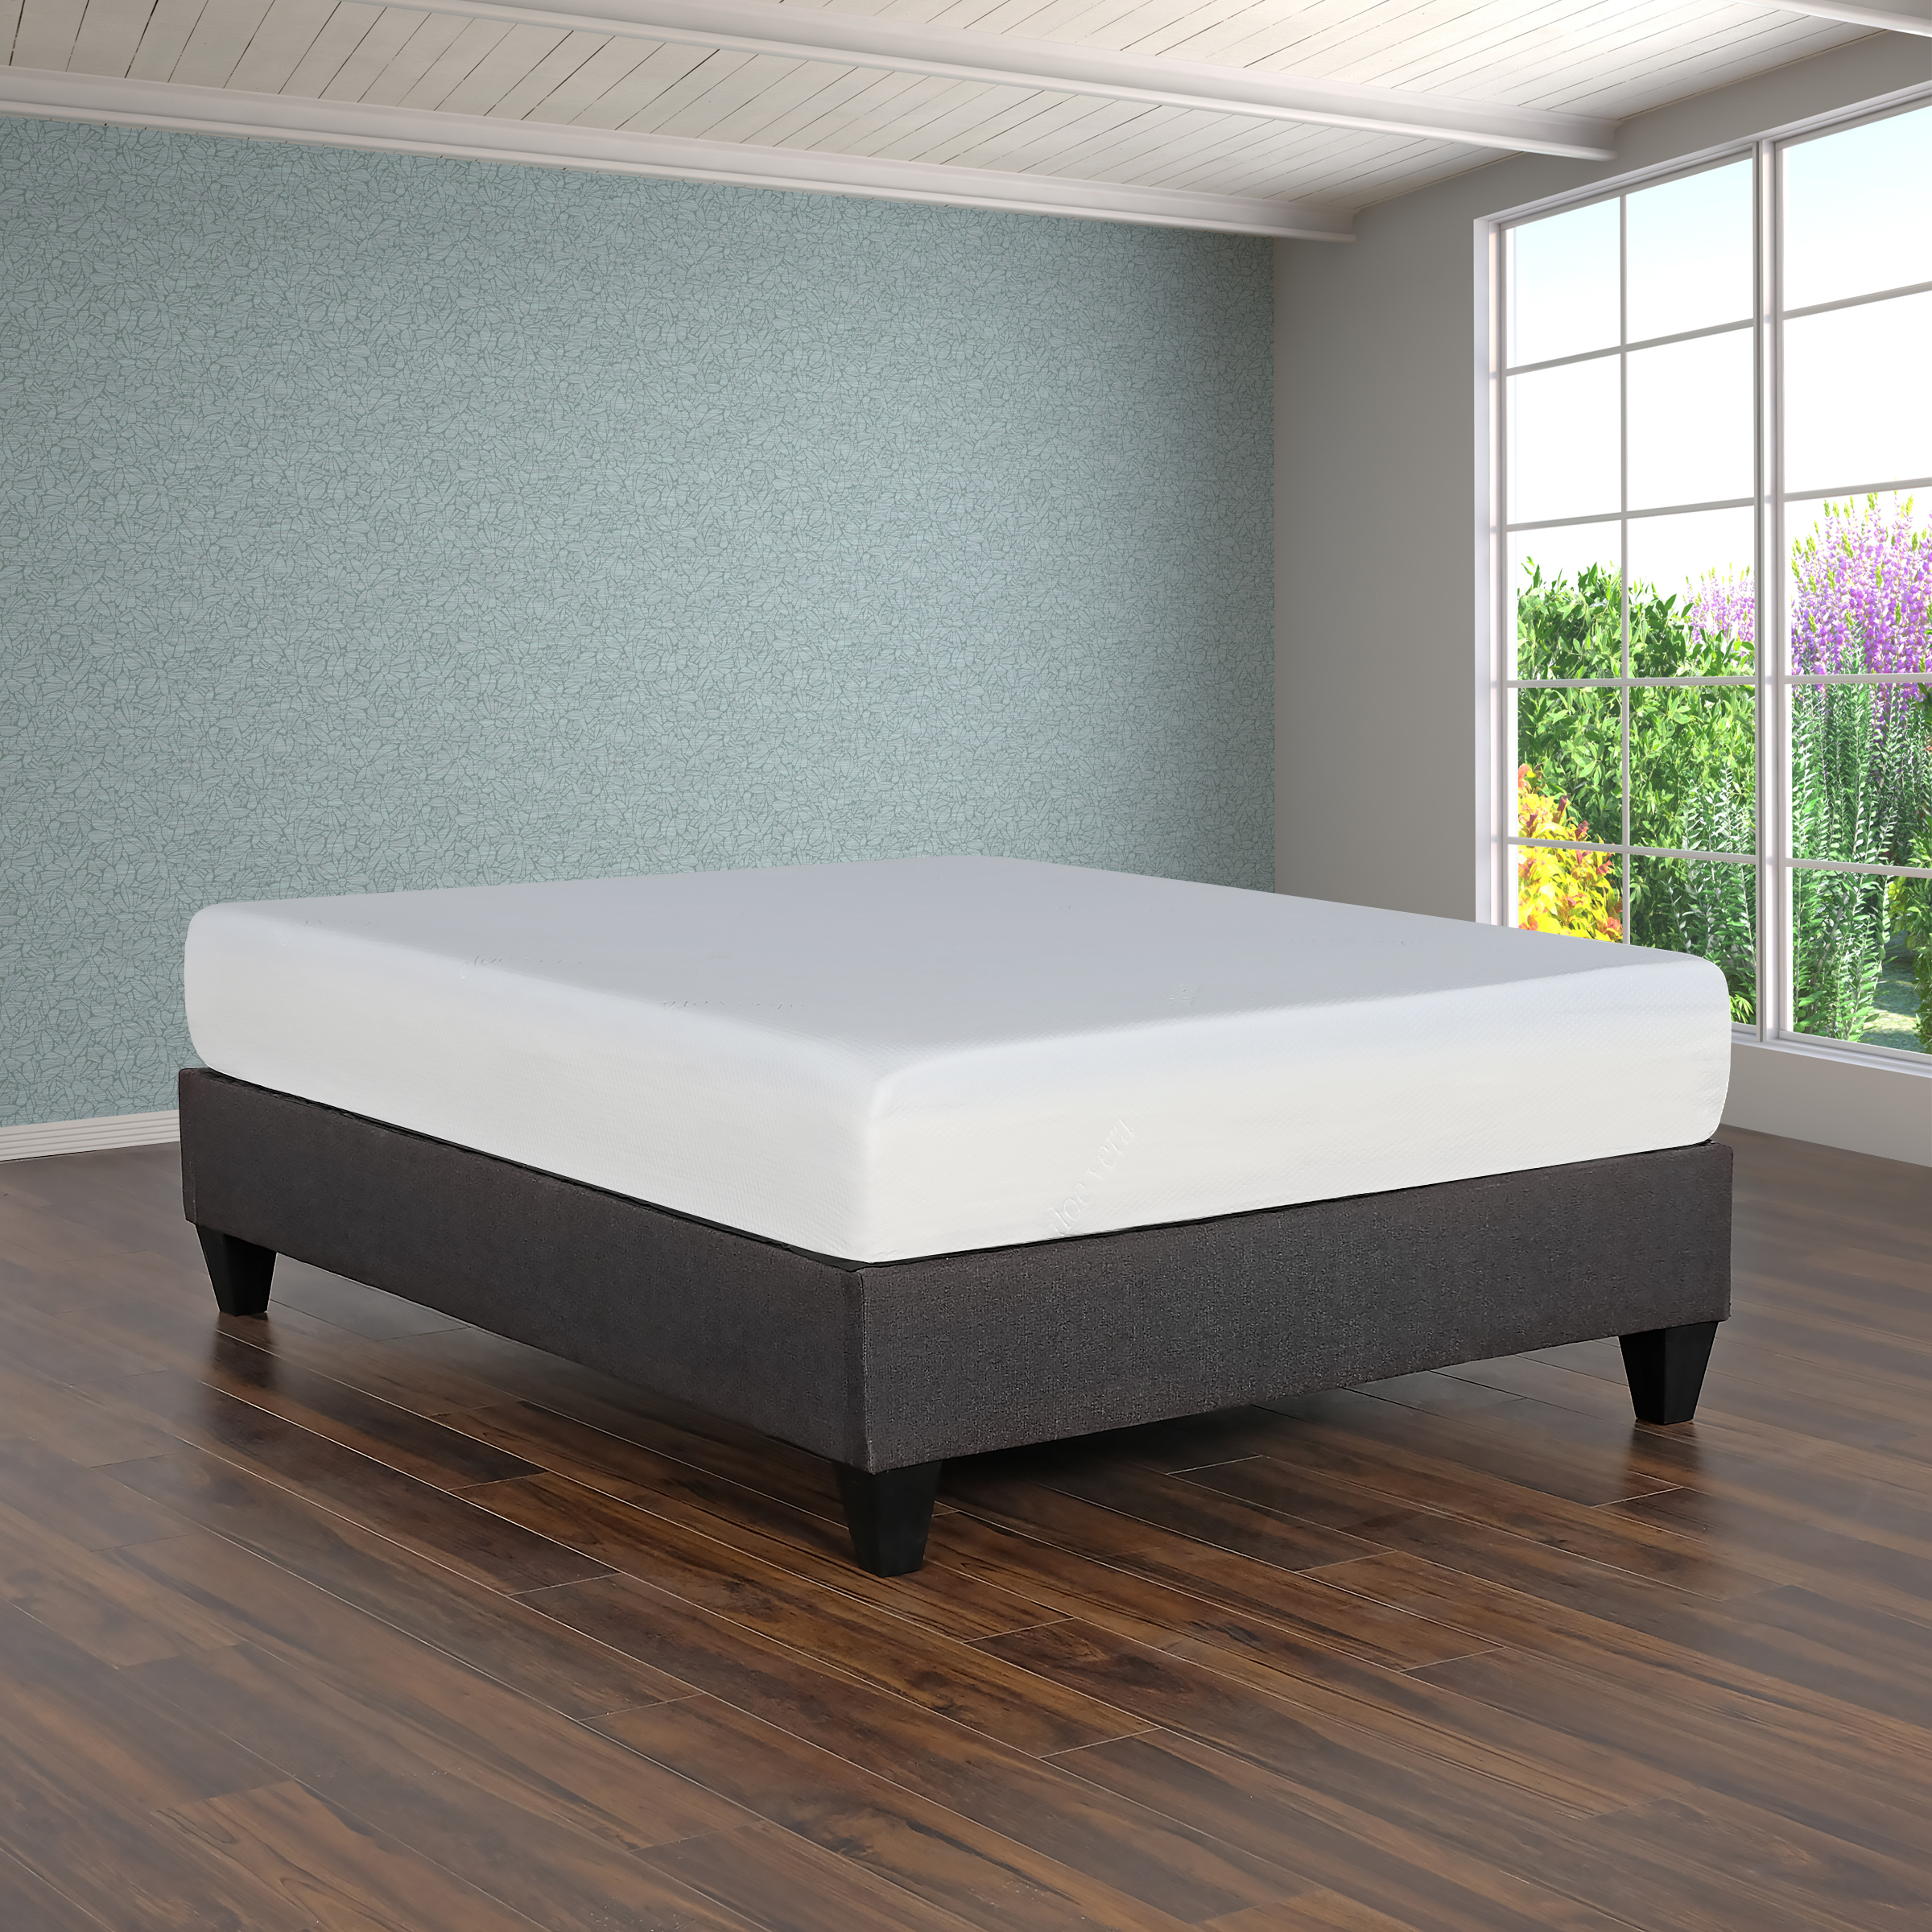 "Primo International Super Divine Plush 10"" Gel Memory Foam Mattress, Multiple Sizes"